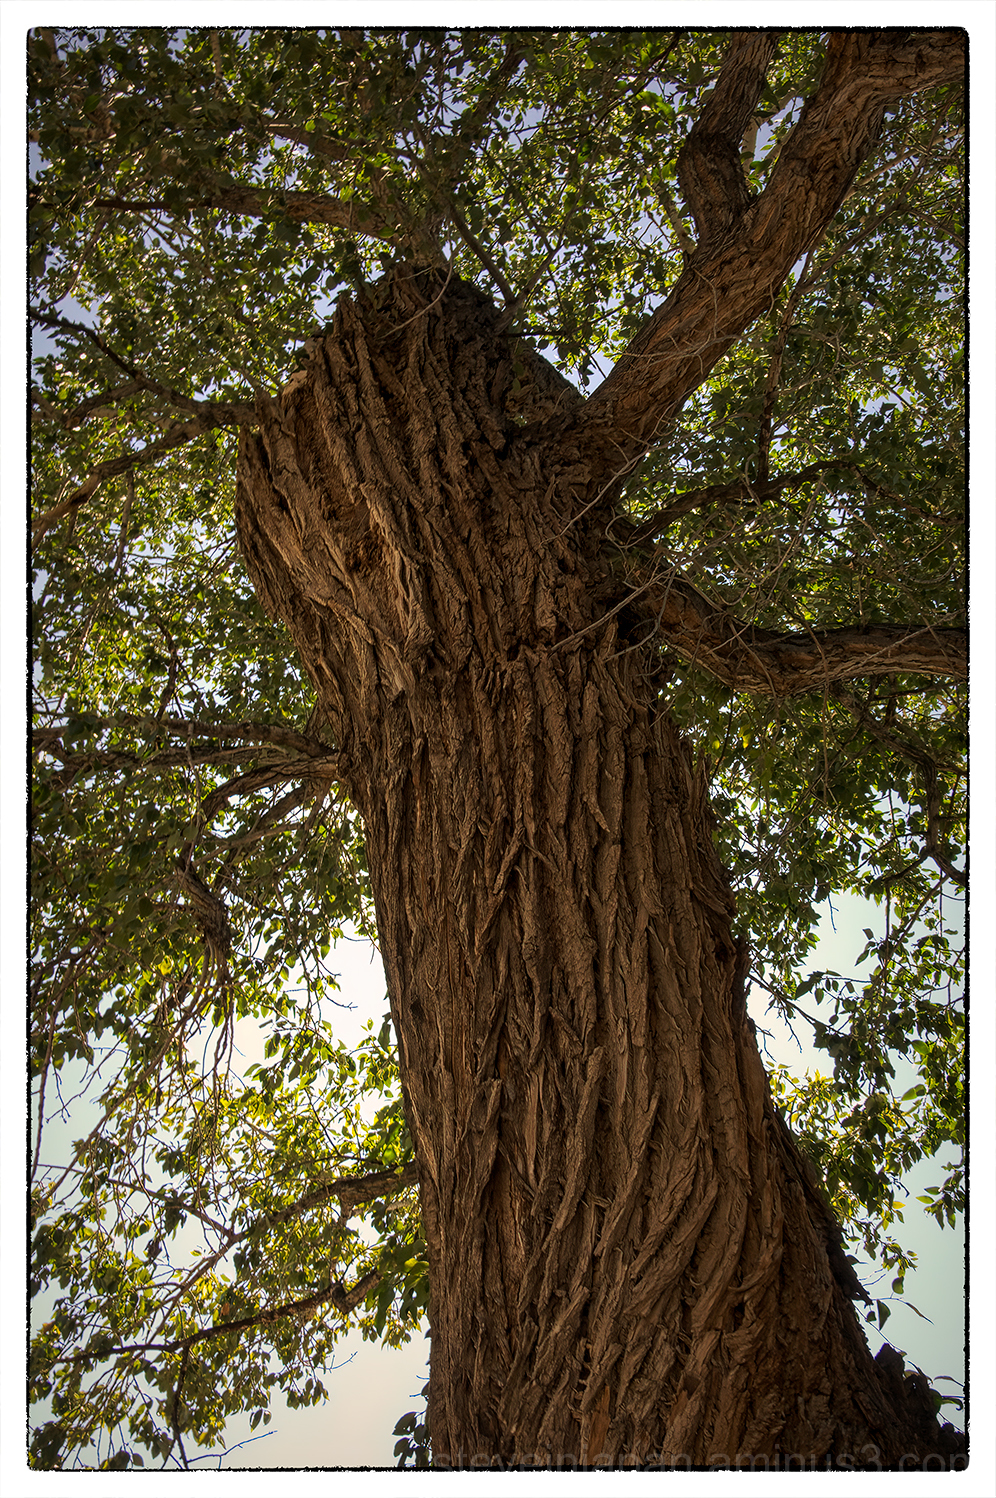 A tree in Taos, New Mexico.